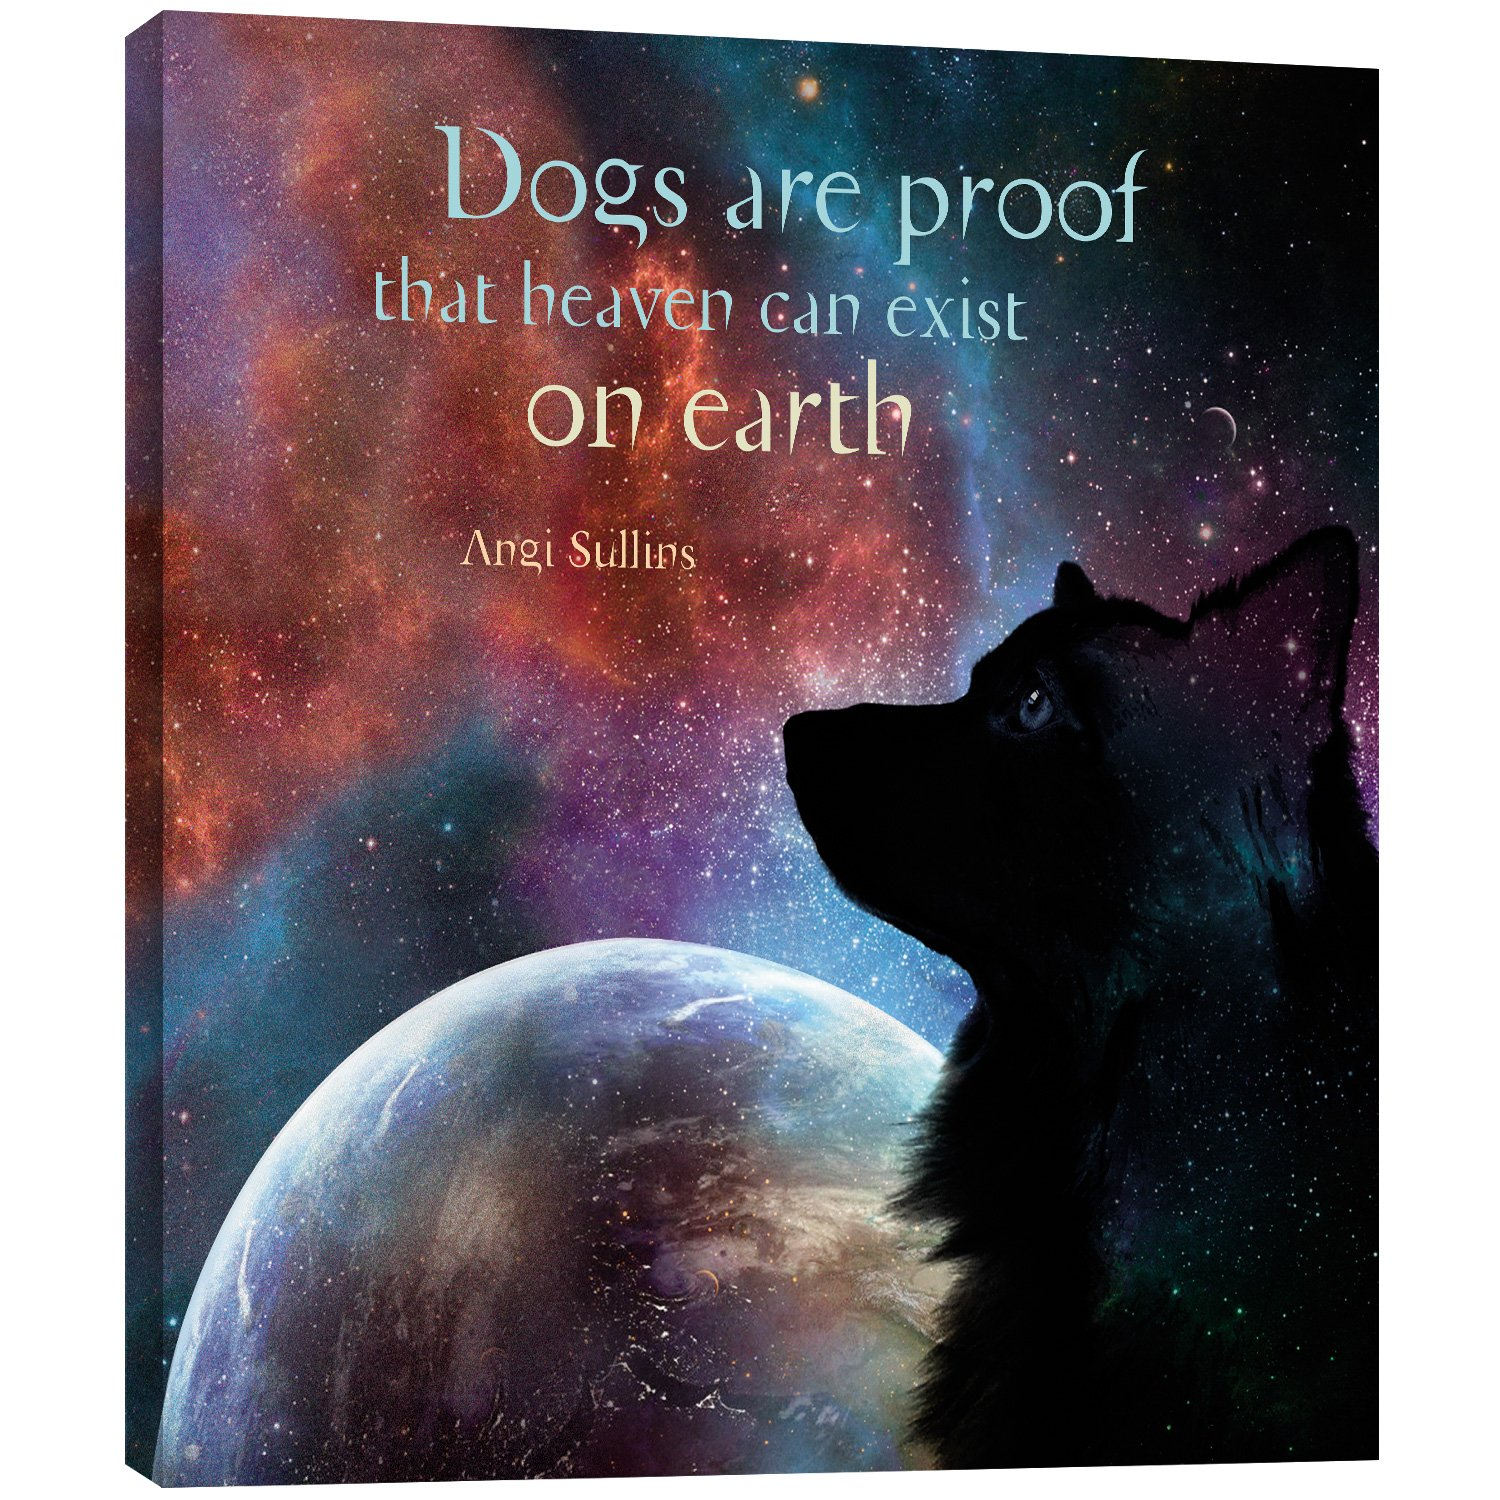 81179 Dogs Heaven Themed Pet Lover Art 11.25 x 11.25 Inches Tree-Free Greetings EcoArt Home Decor Wall Plaque 11.25